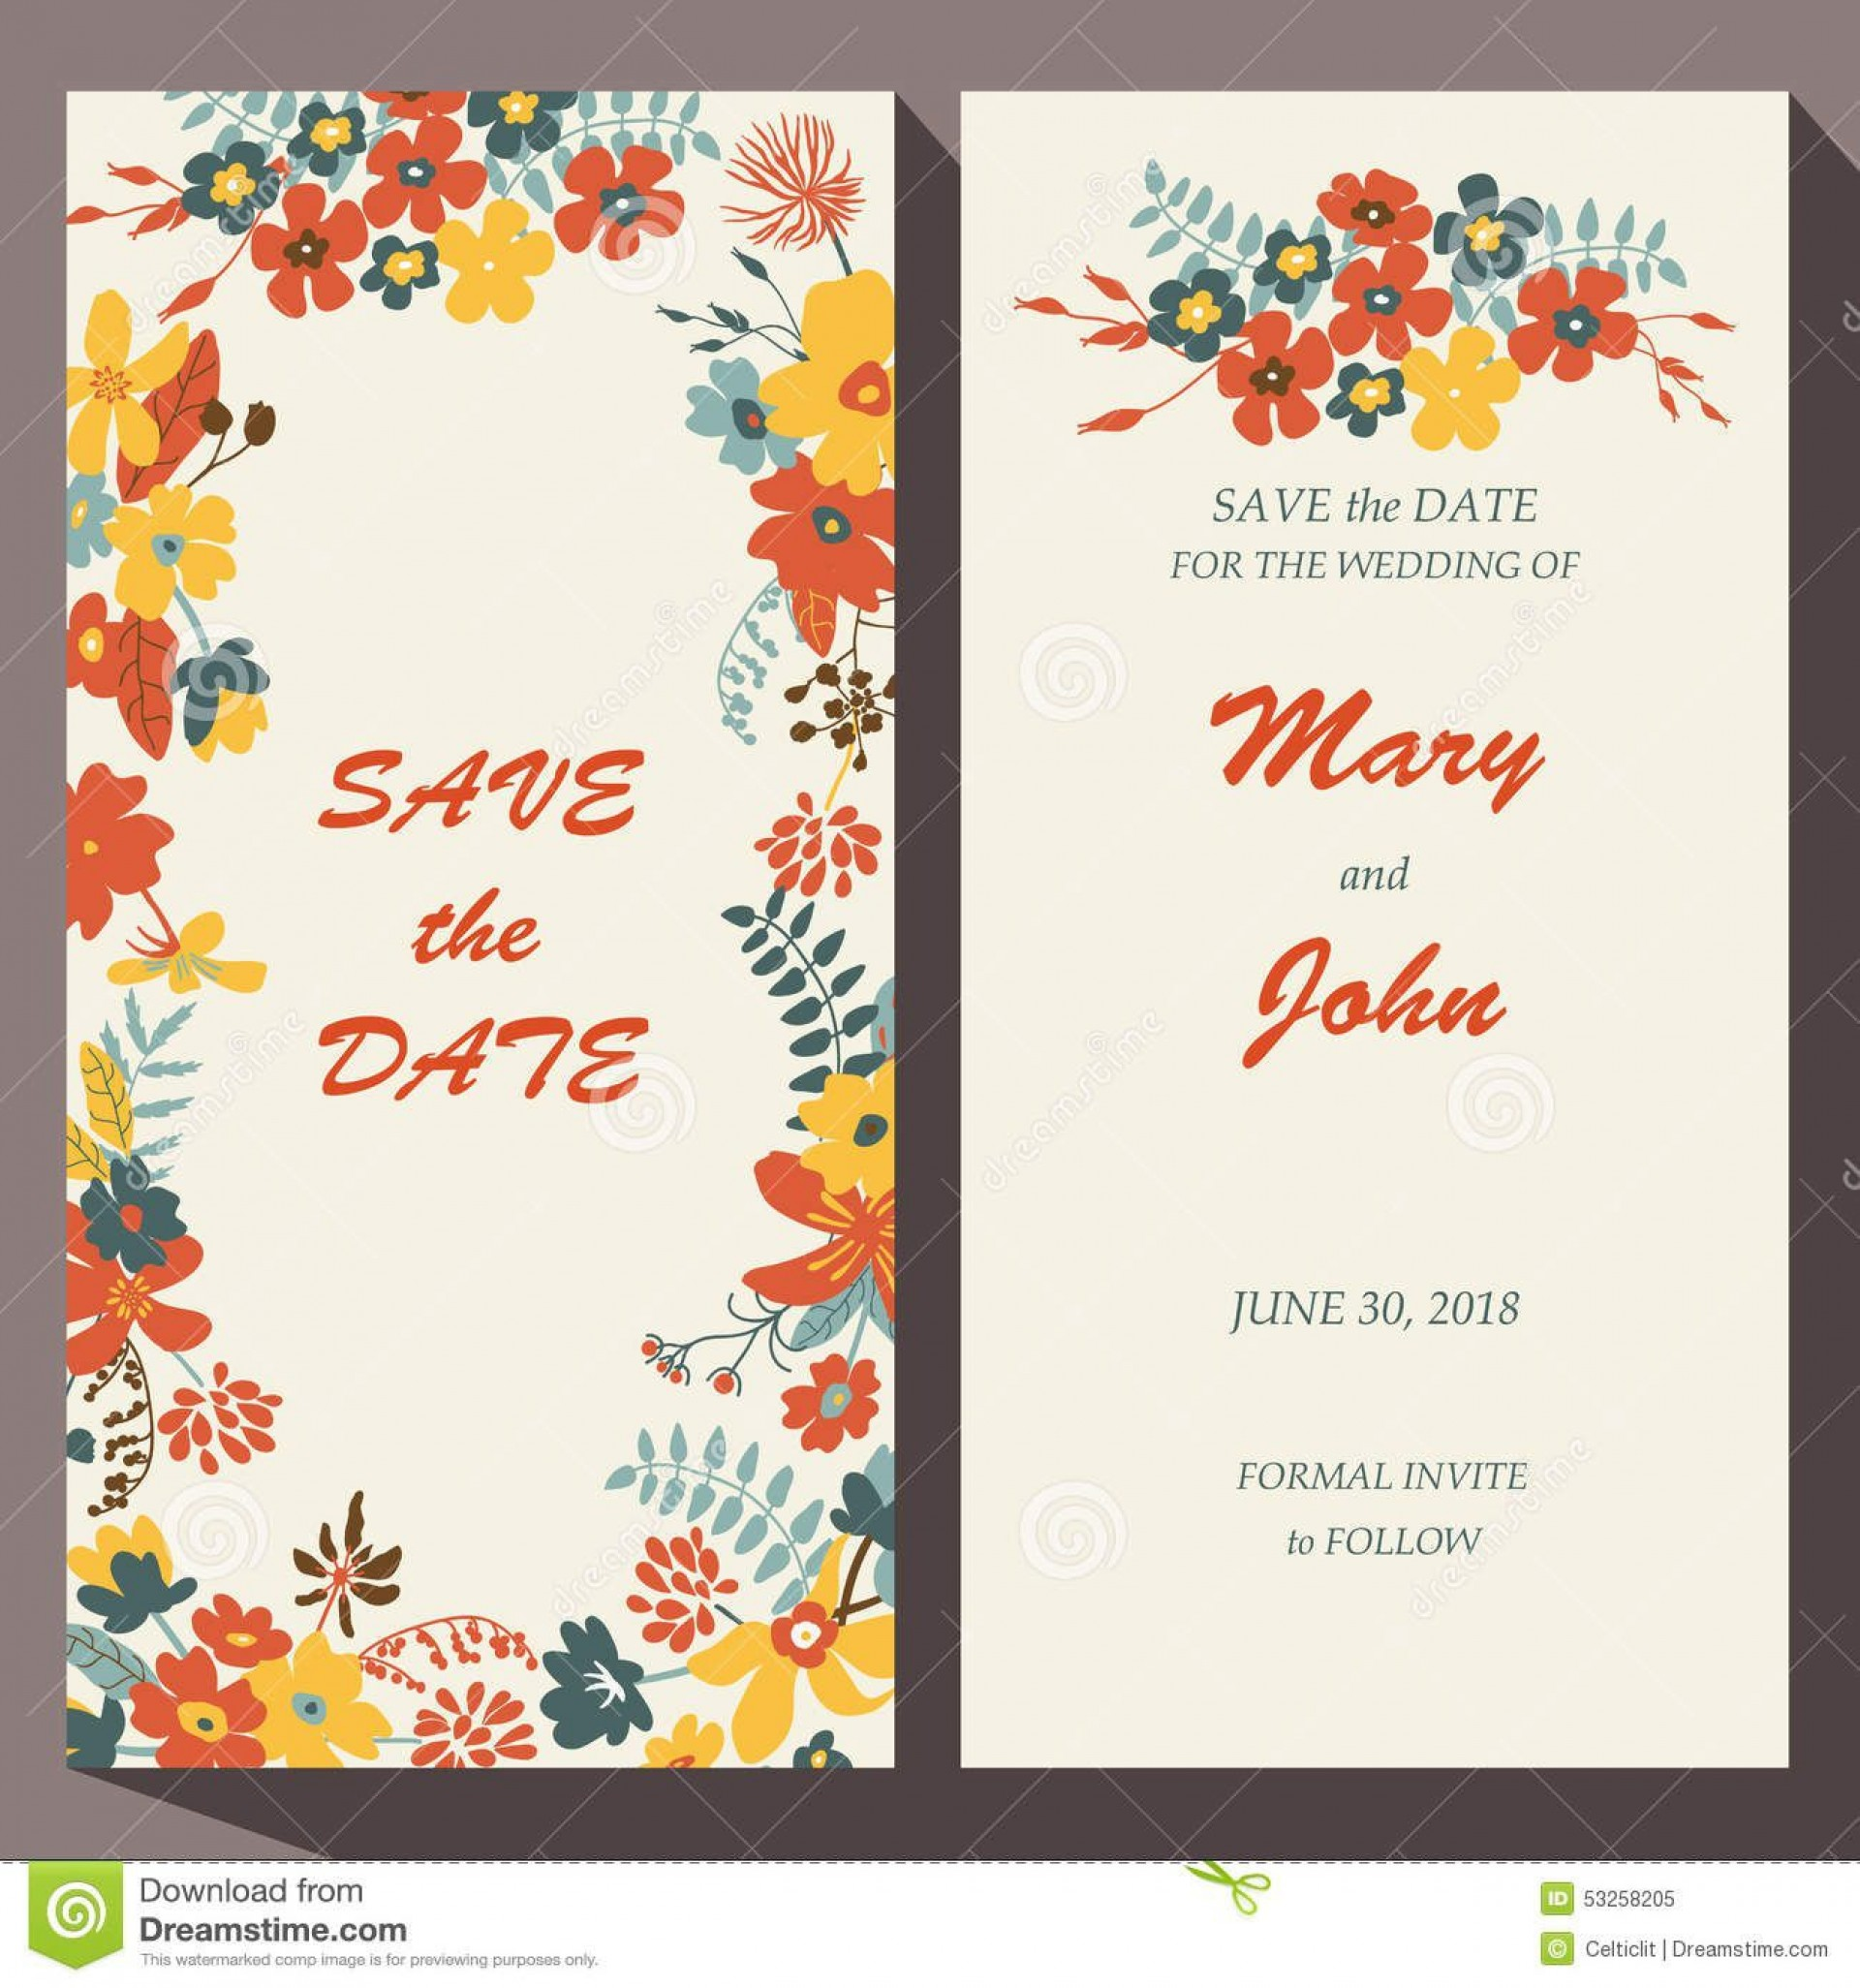 009 Unbelievable Free Save The Date Birthday Postcard Template Concept 1920